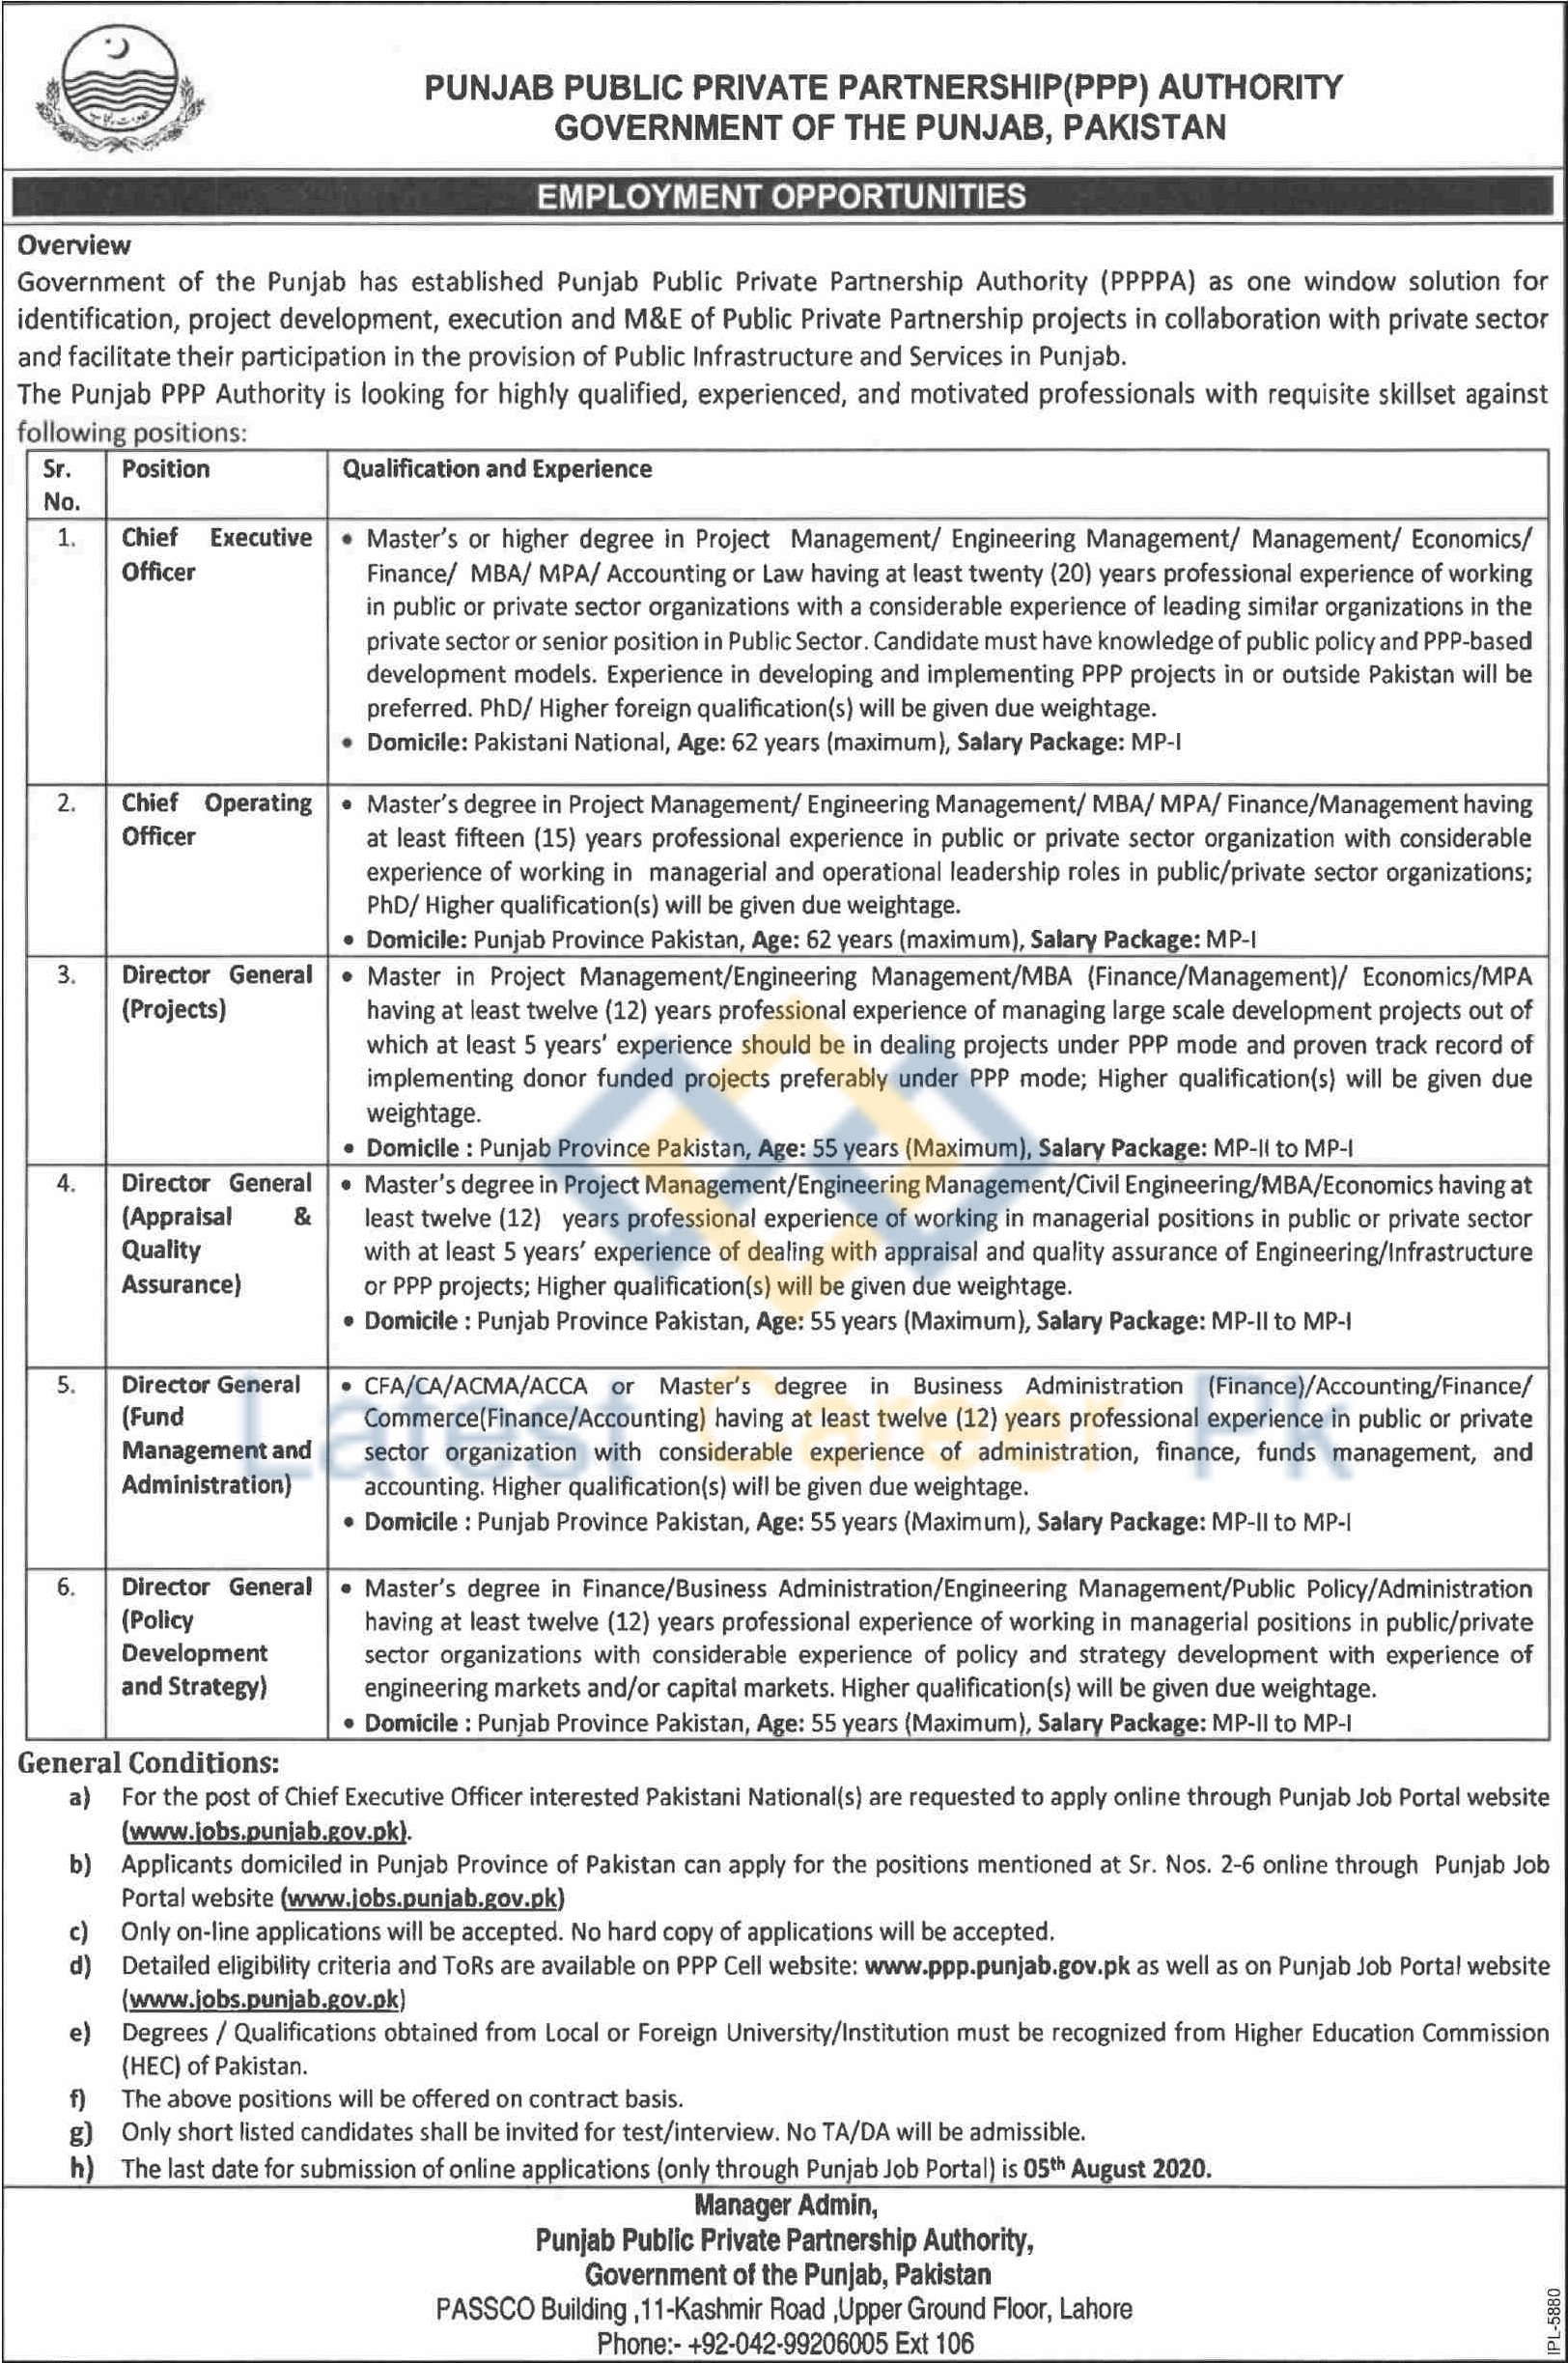 Punjab-Public-Private-Partnership-Authority-PPPPA-Lahore-Jobs-15-July-2020